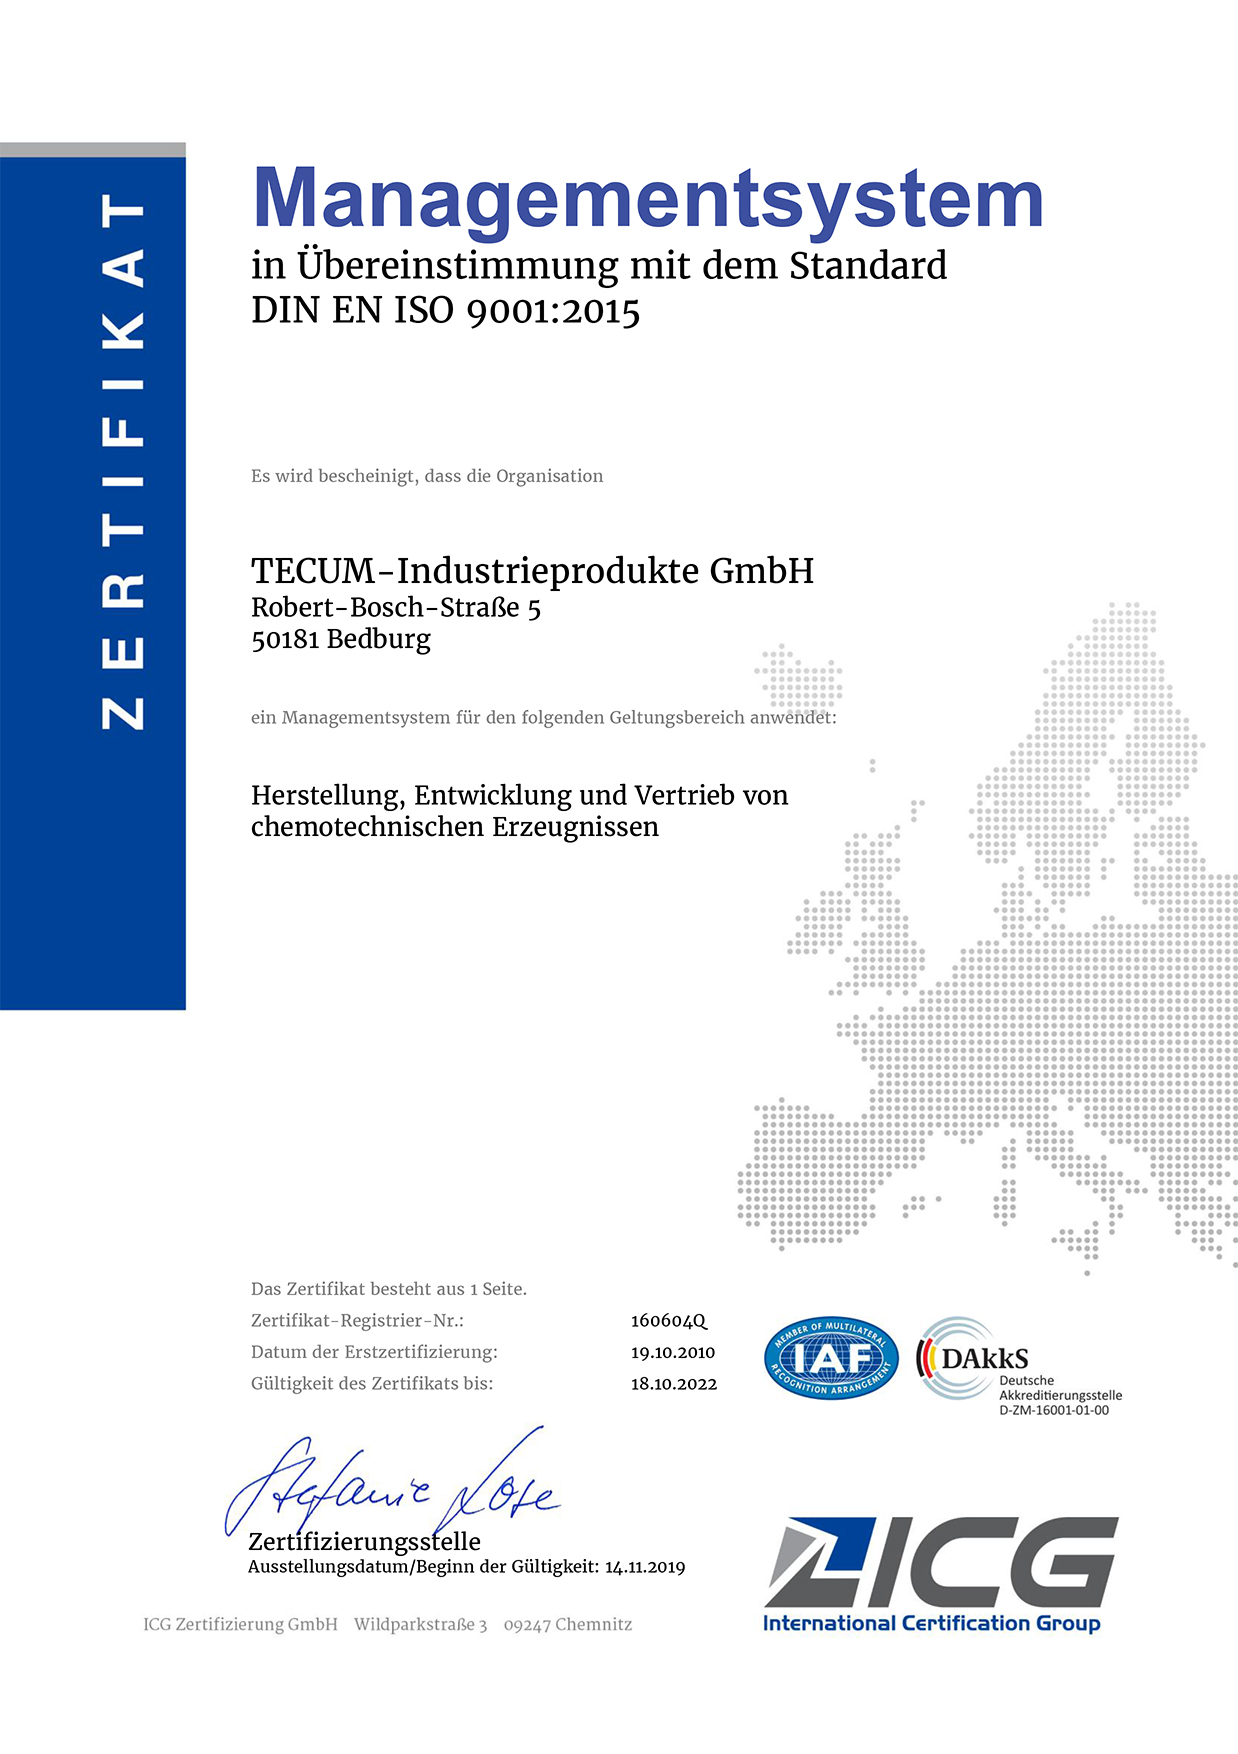 DIN EN ISO 9001 Quality Management System for TECUM GmbH